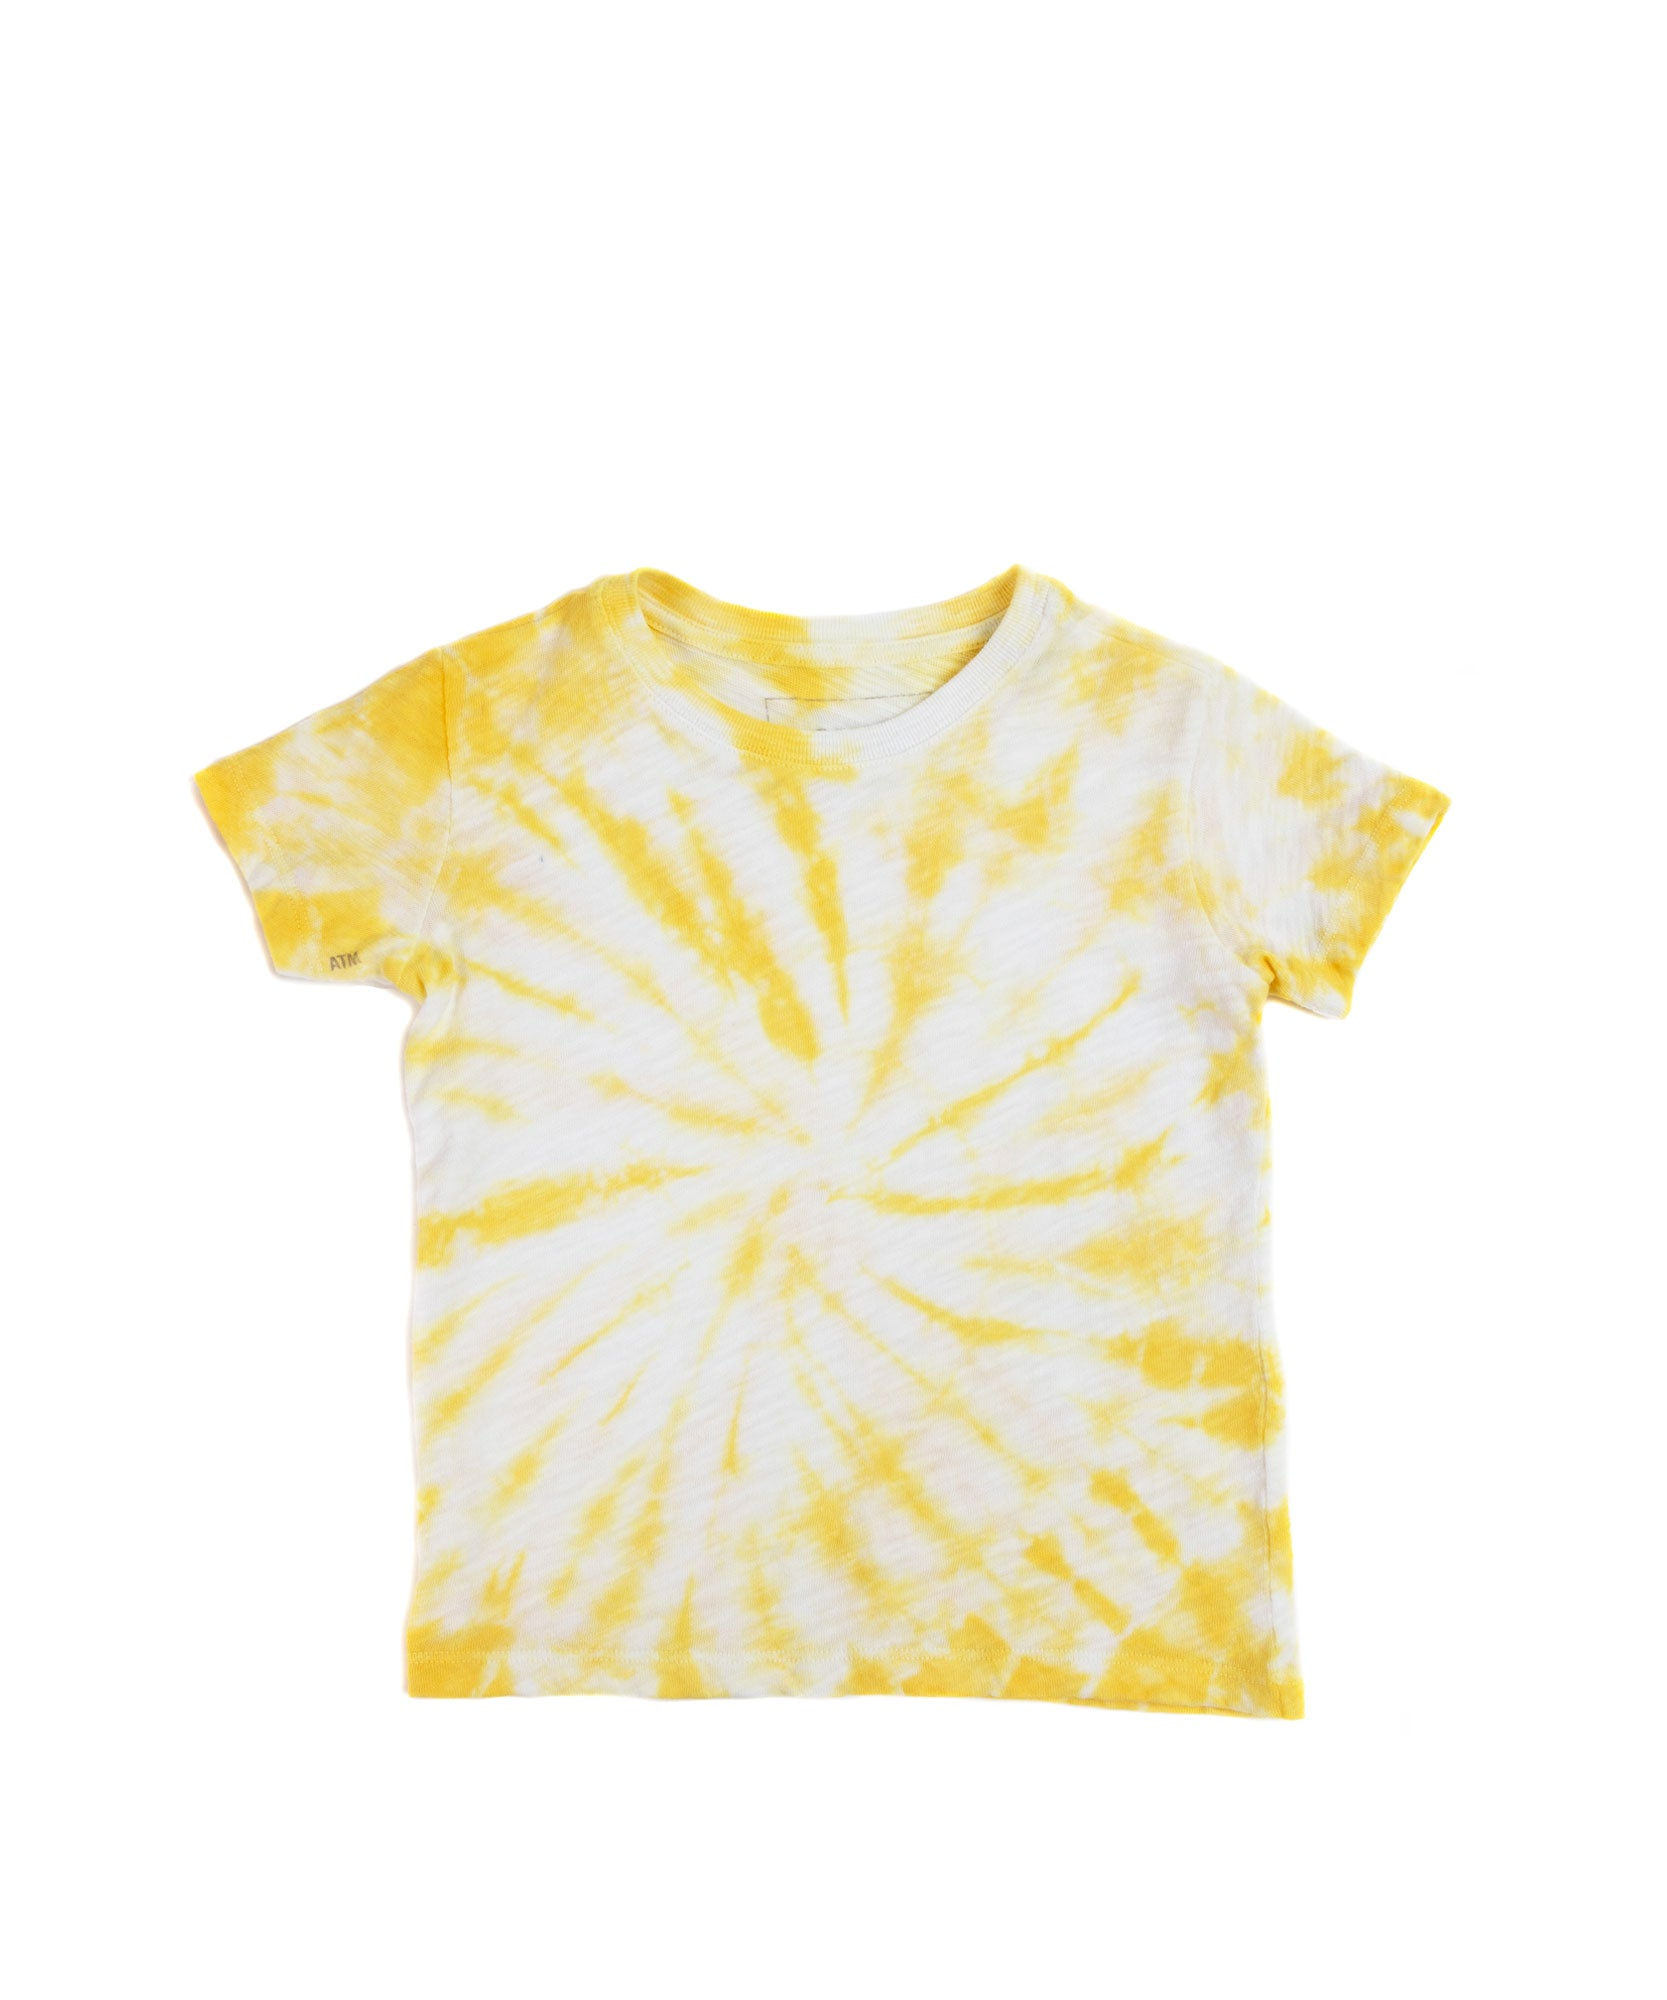 Canary Tie Dye Kids Slub Jersey Short Sleeve Tee - Kid's Cotton Short Sleeve Tee by ATM Anthony Thomas Melillo